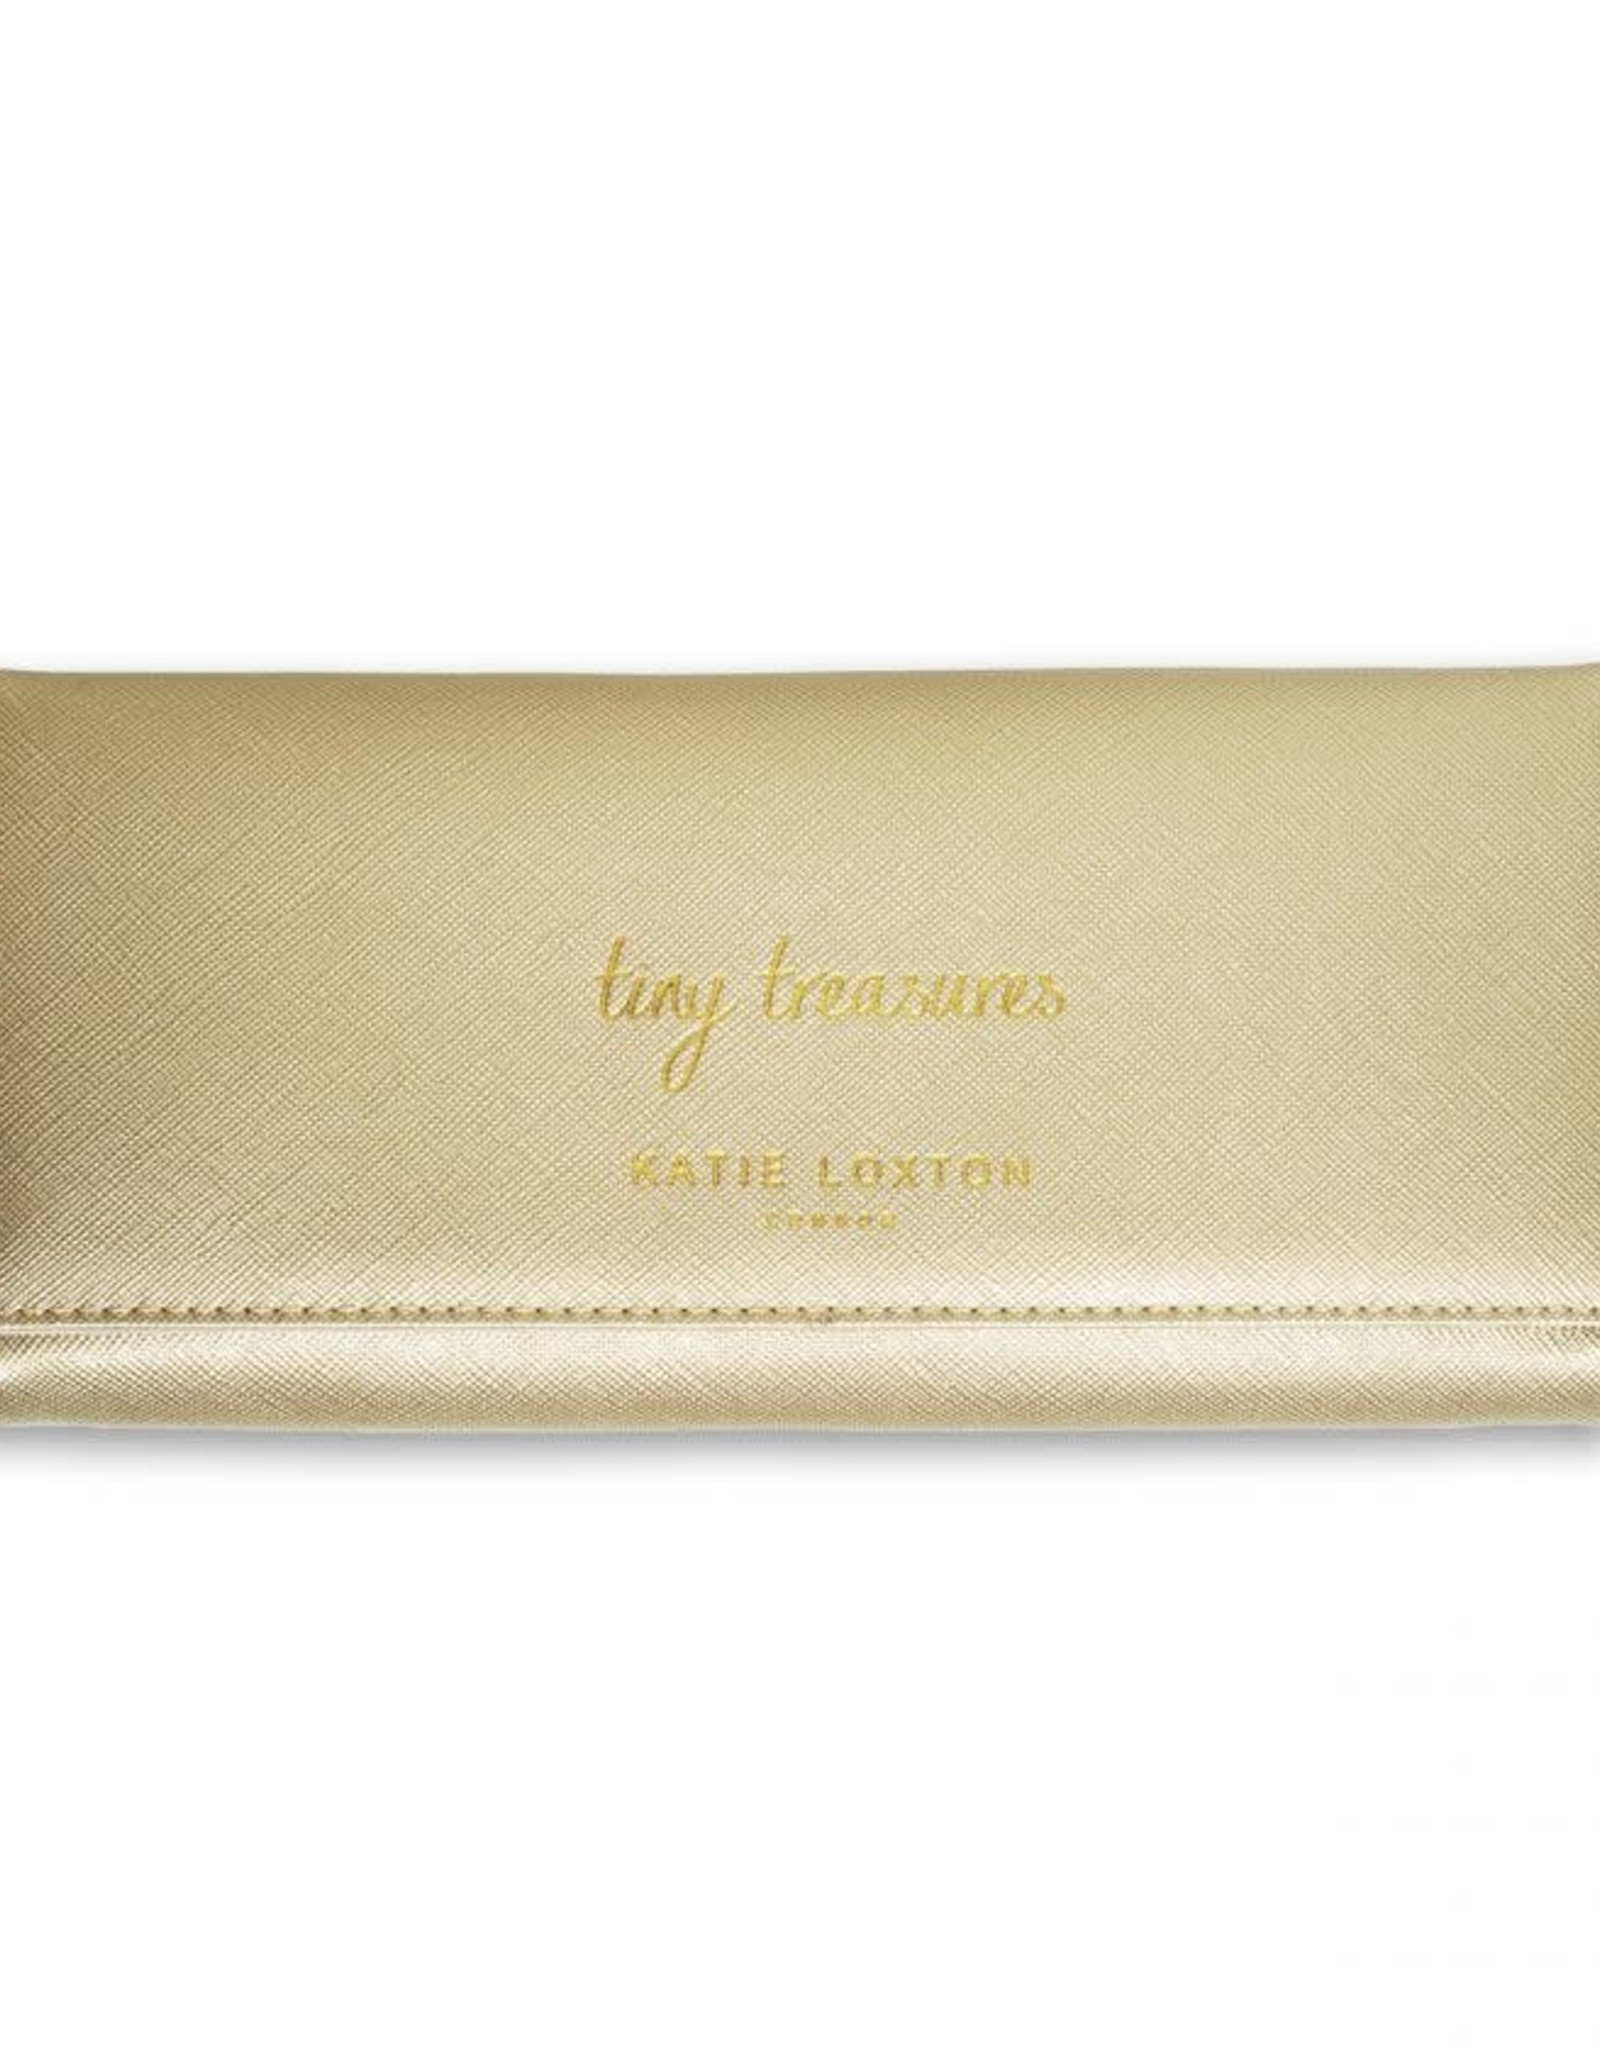 Katie Loxton Jewelry Roll-Tiny Treasures Metallic Gold